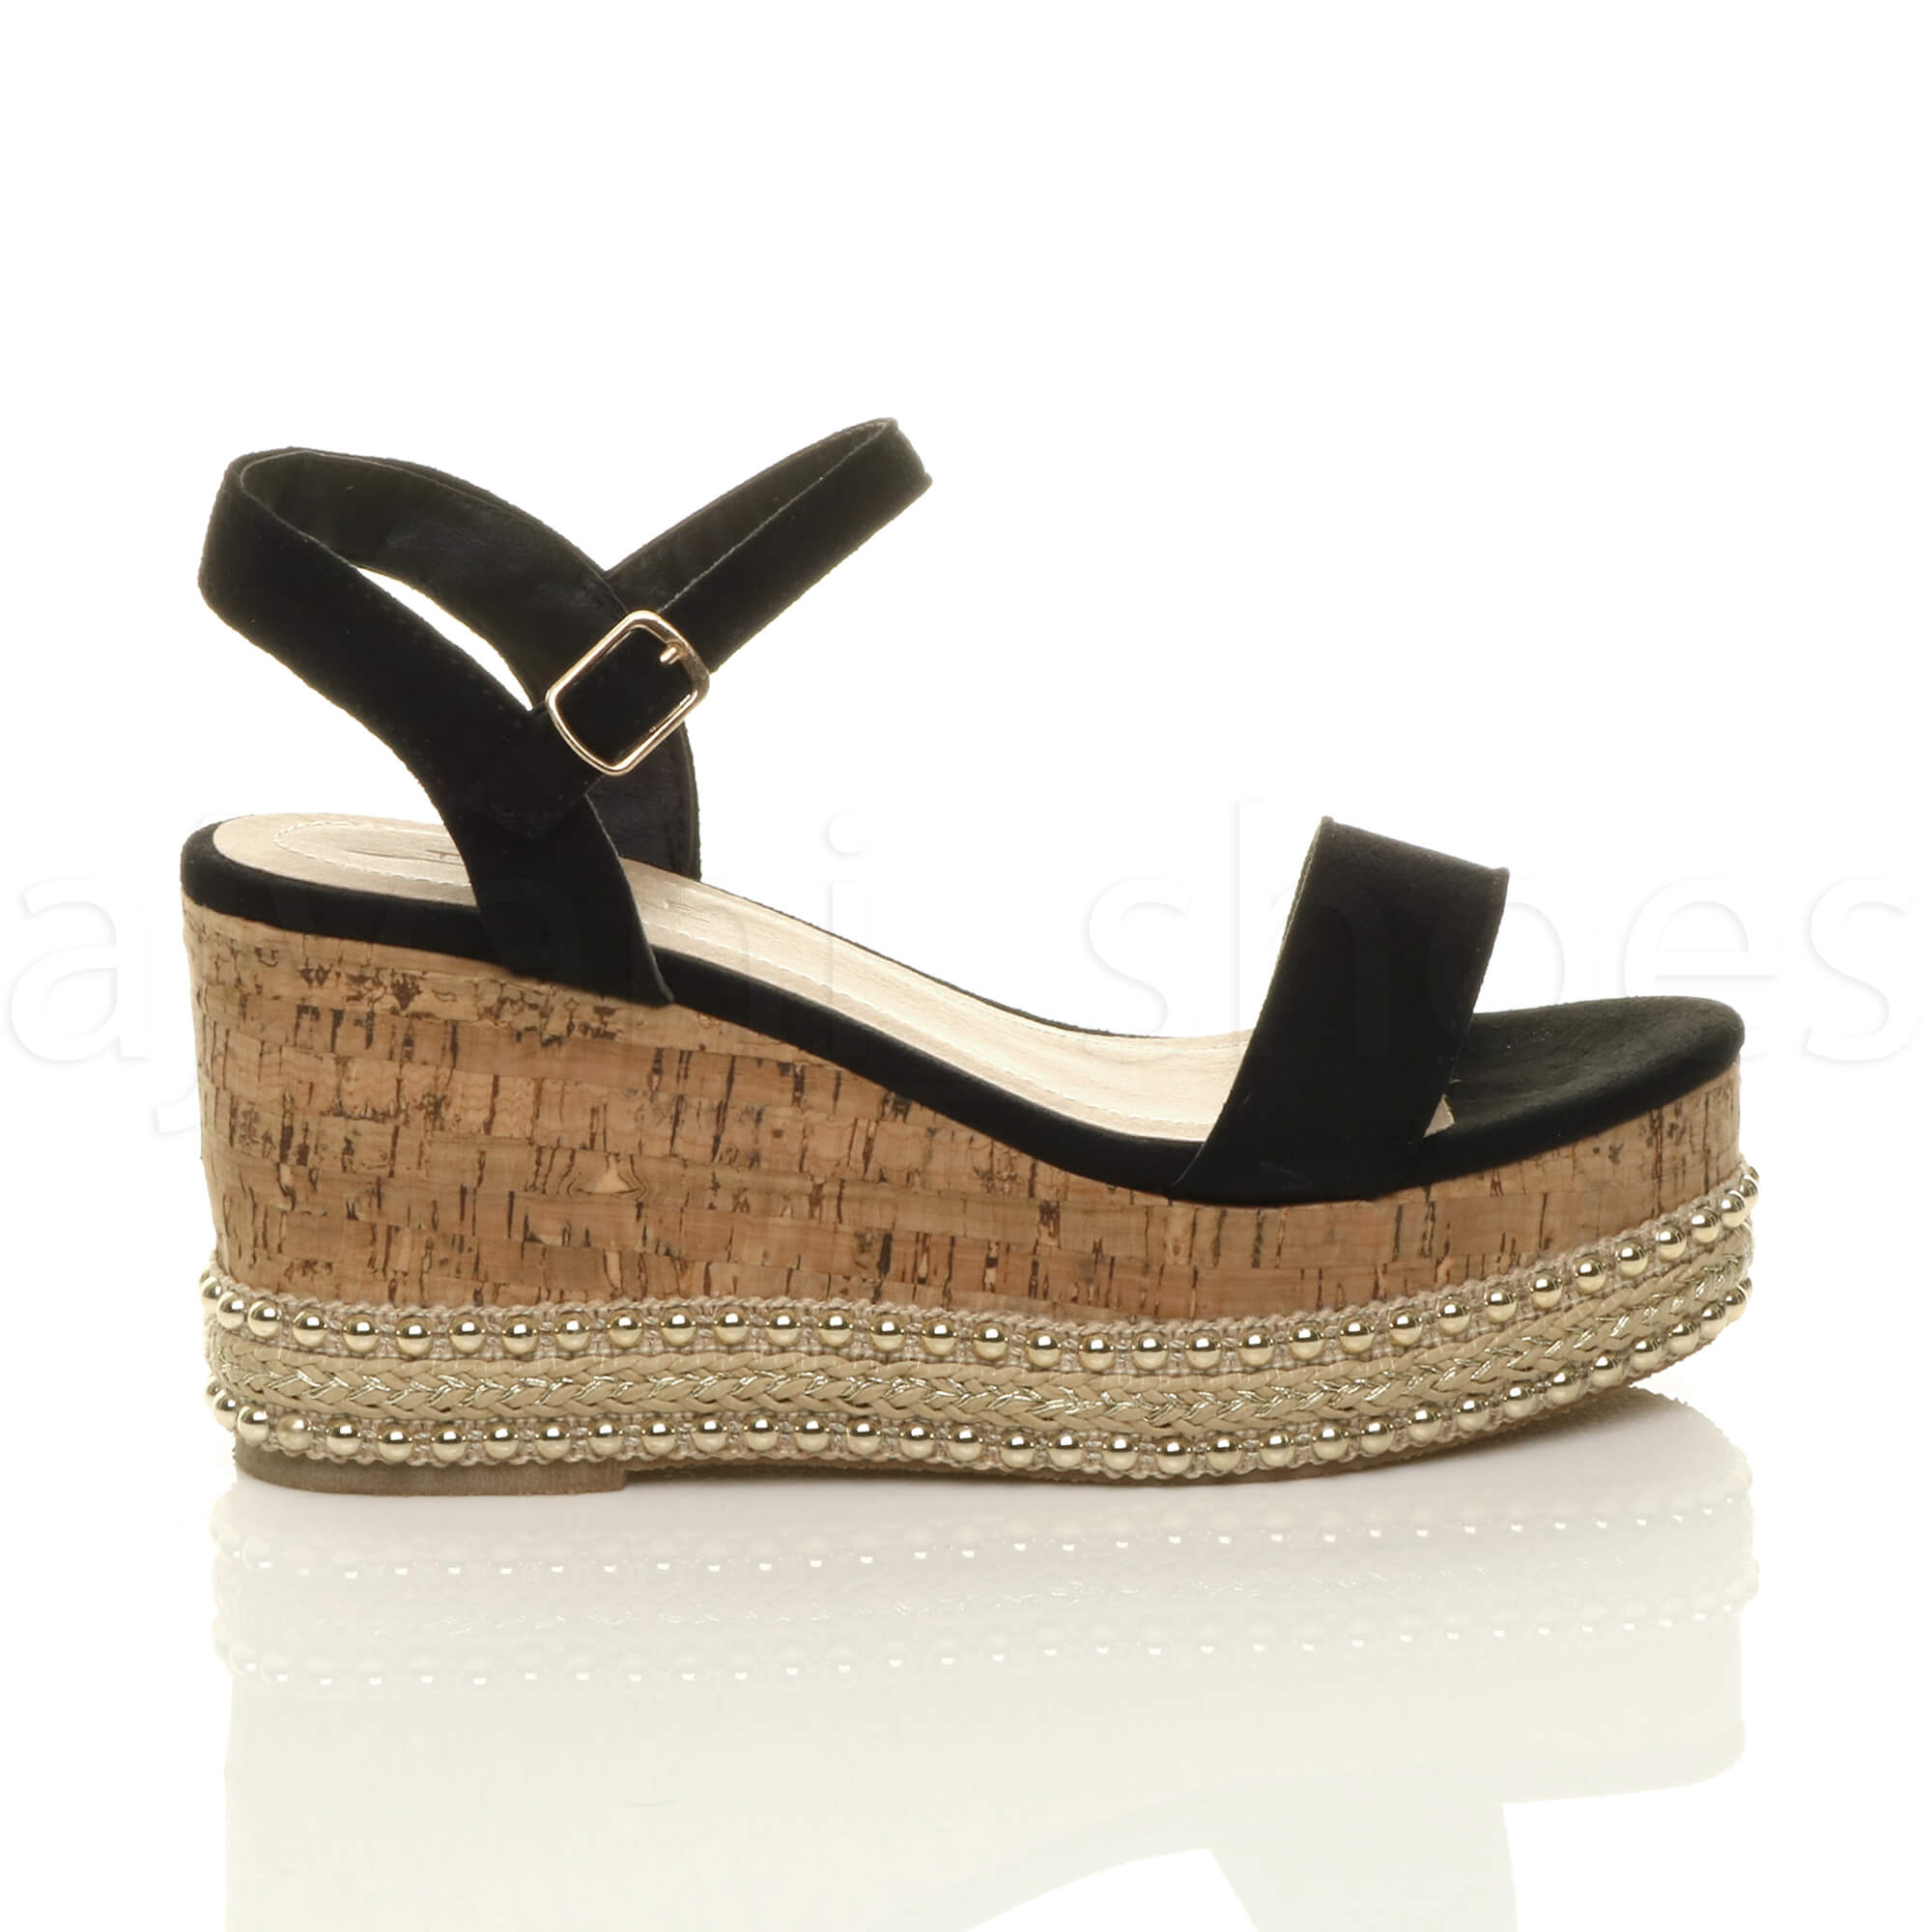 WOMENS LADIES MID WEDGE HEEL STUDDED ESPADRILLE CORK PLATFORM SANDALS SIZE